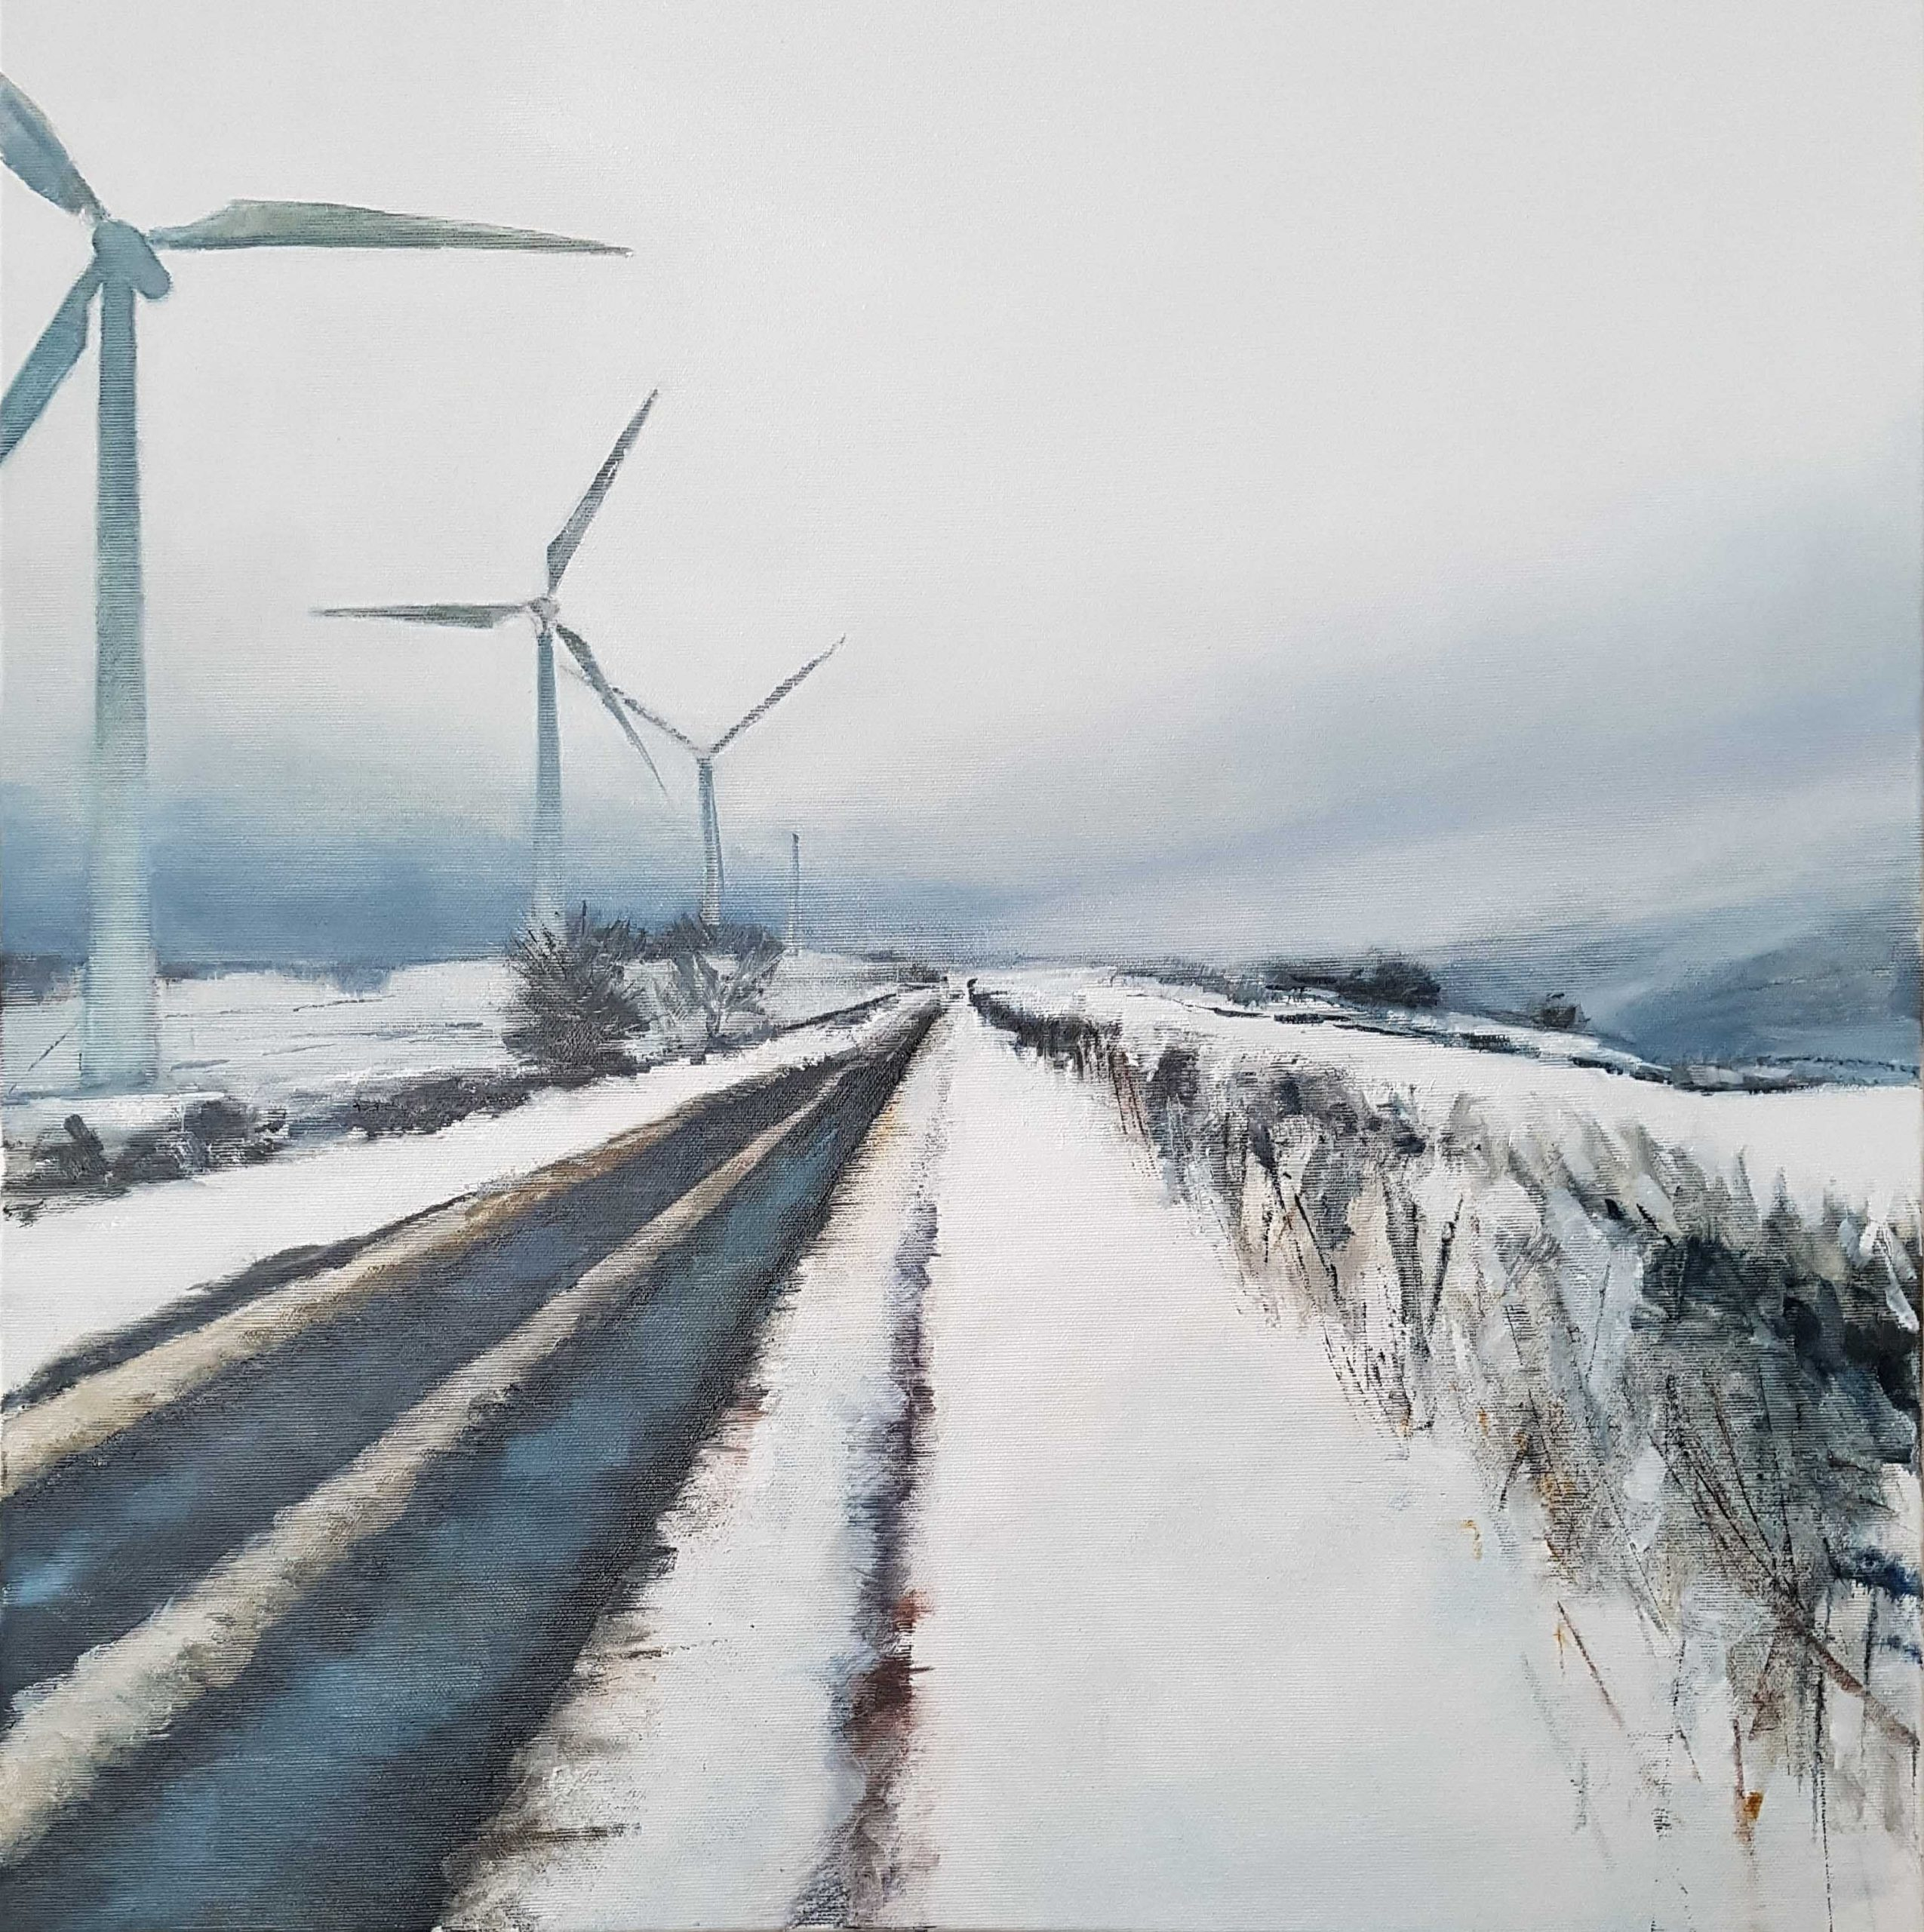 NIMBY, 2020, oil on canvas, Landscape painting of snow and windmills, 61x61cm, Julia Brown